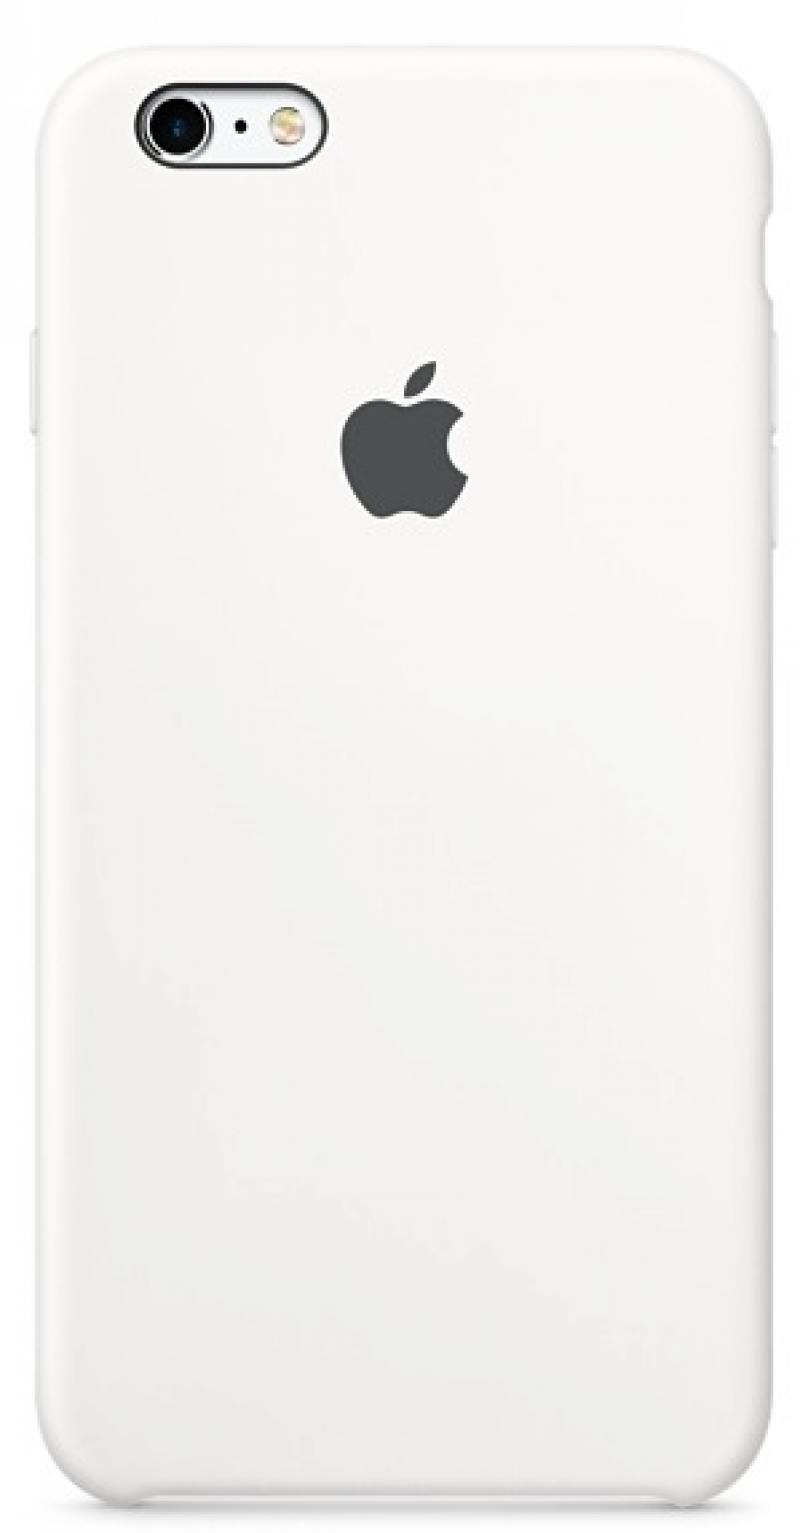 Чехол Apple Silicone Case White для iPhone 6S белый MKY12ZM/A apple silicone case чехол для iphone 6s plus white